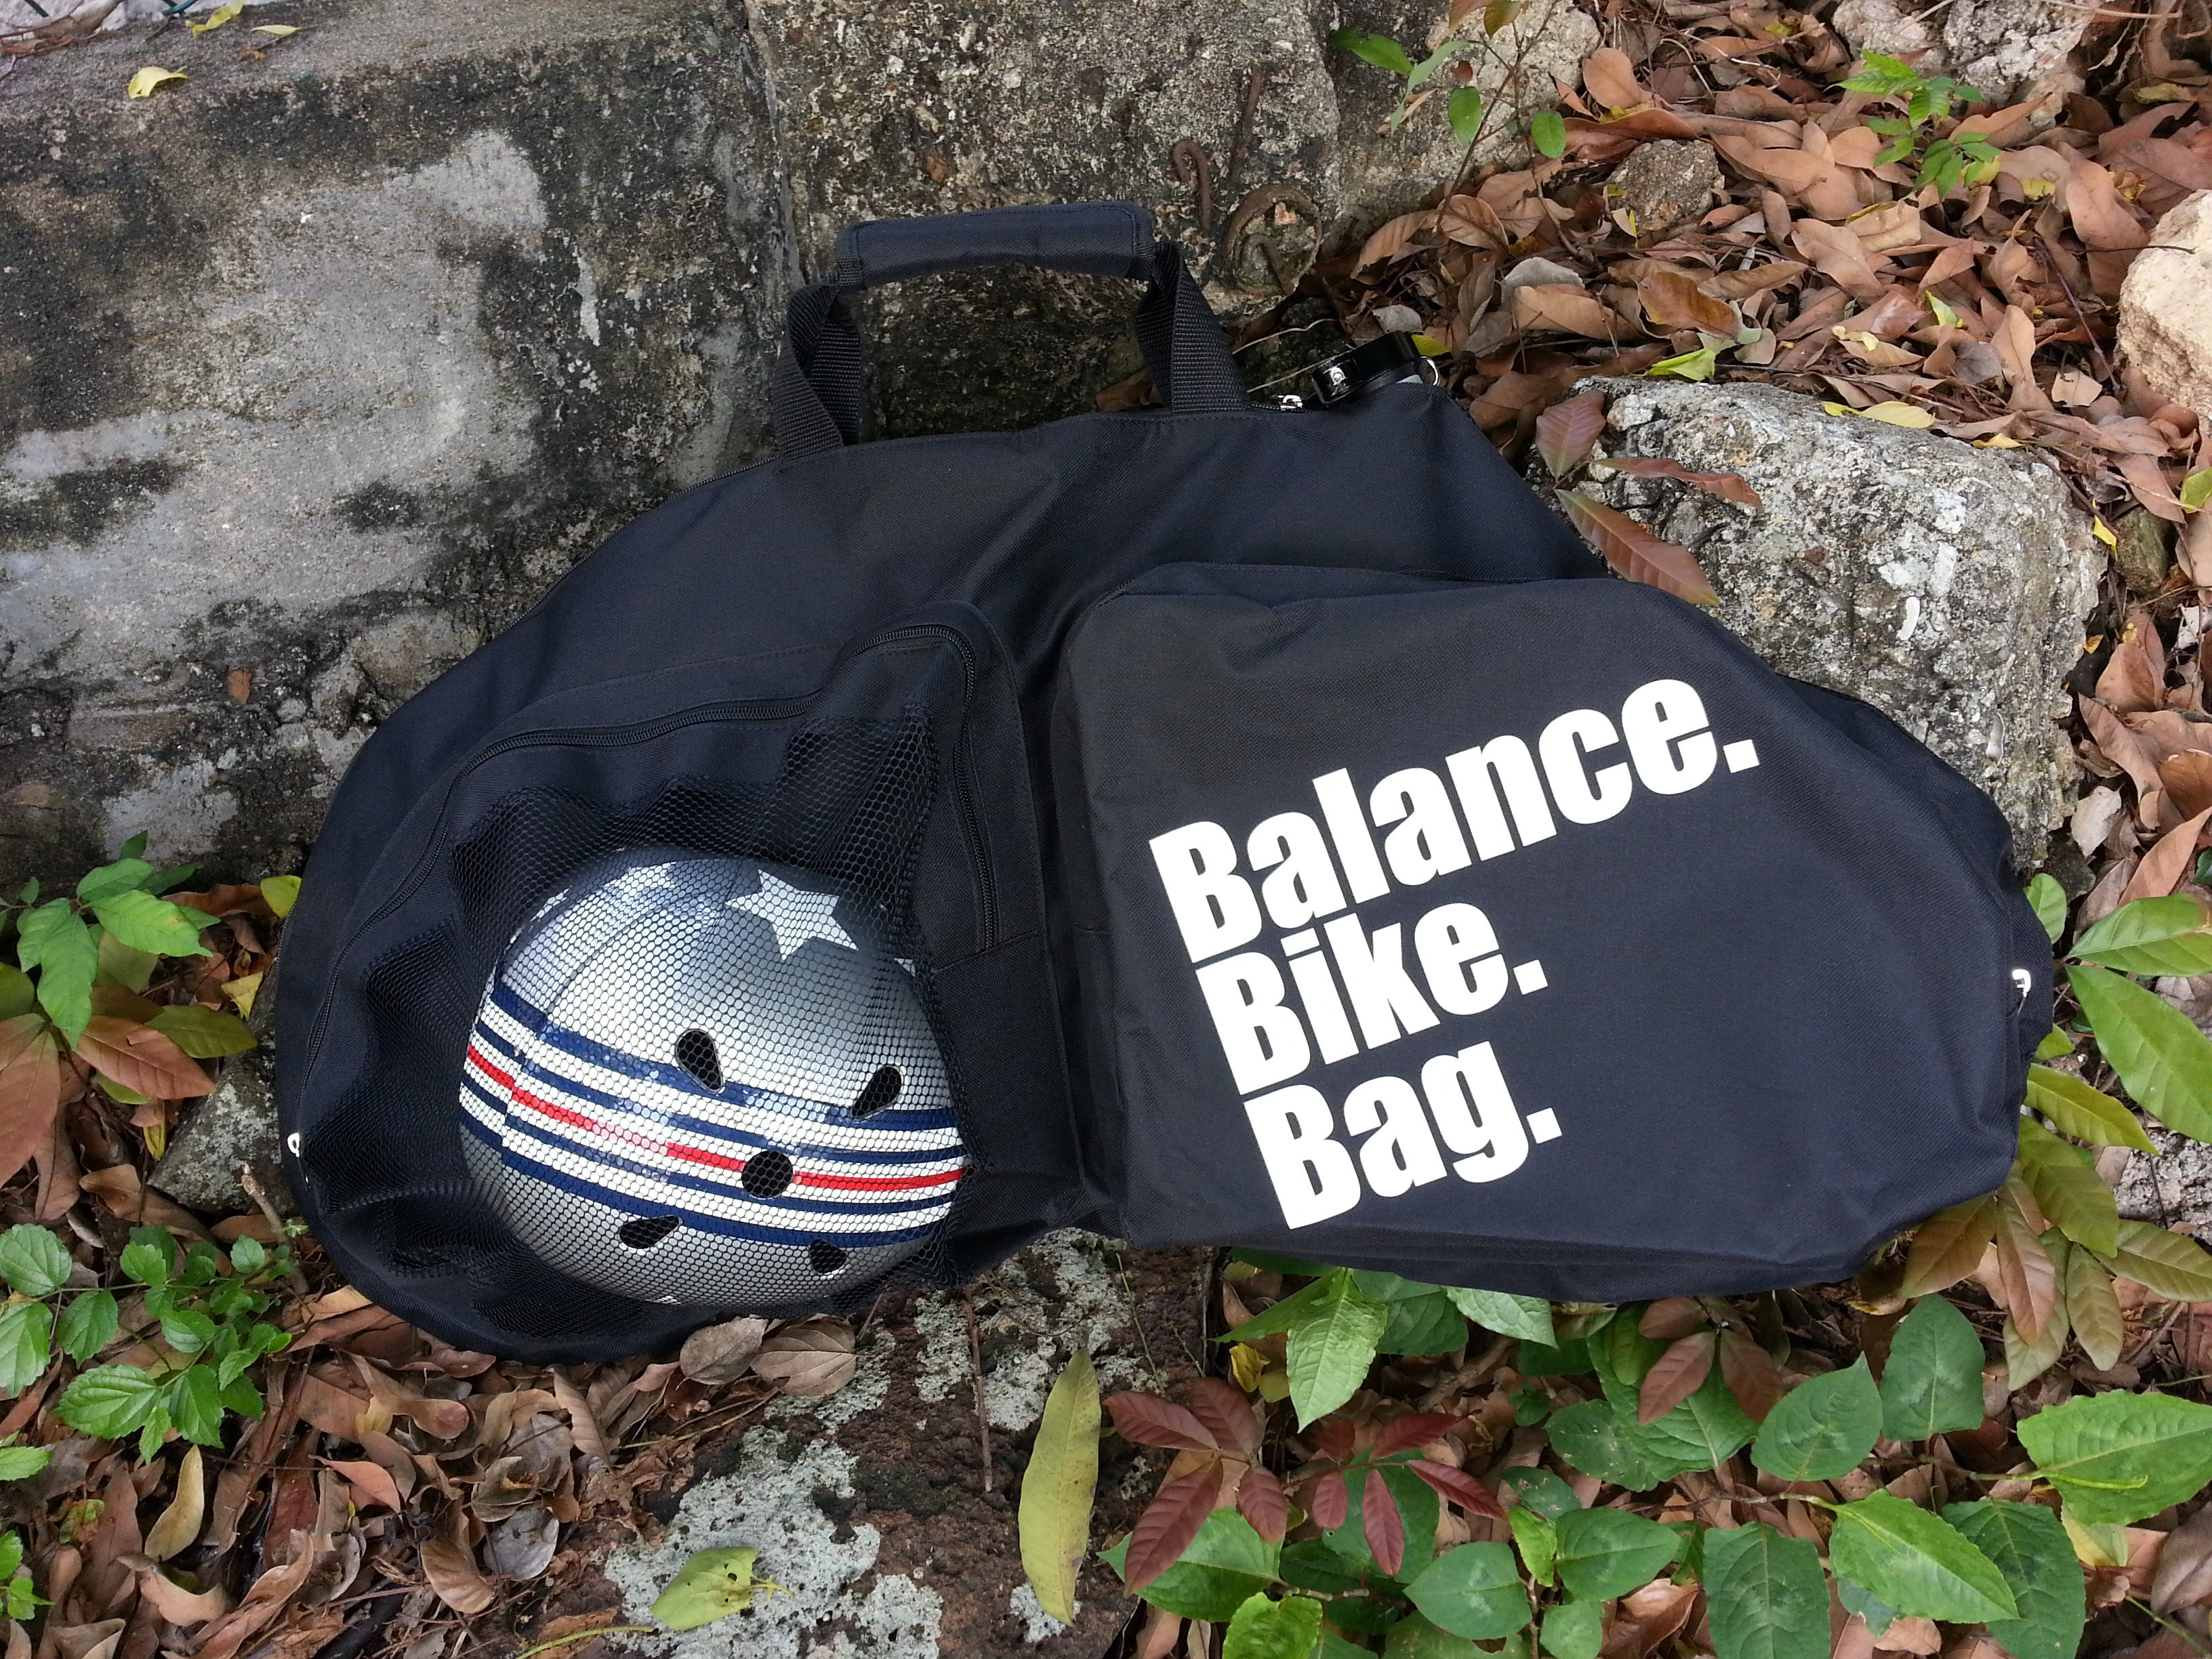 Selecting a Balance Bike Bag